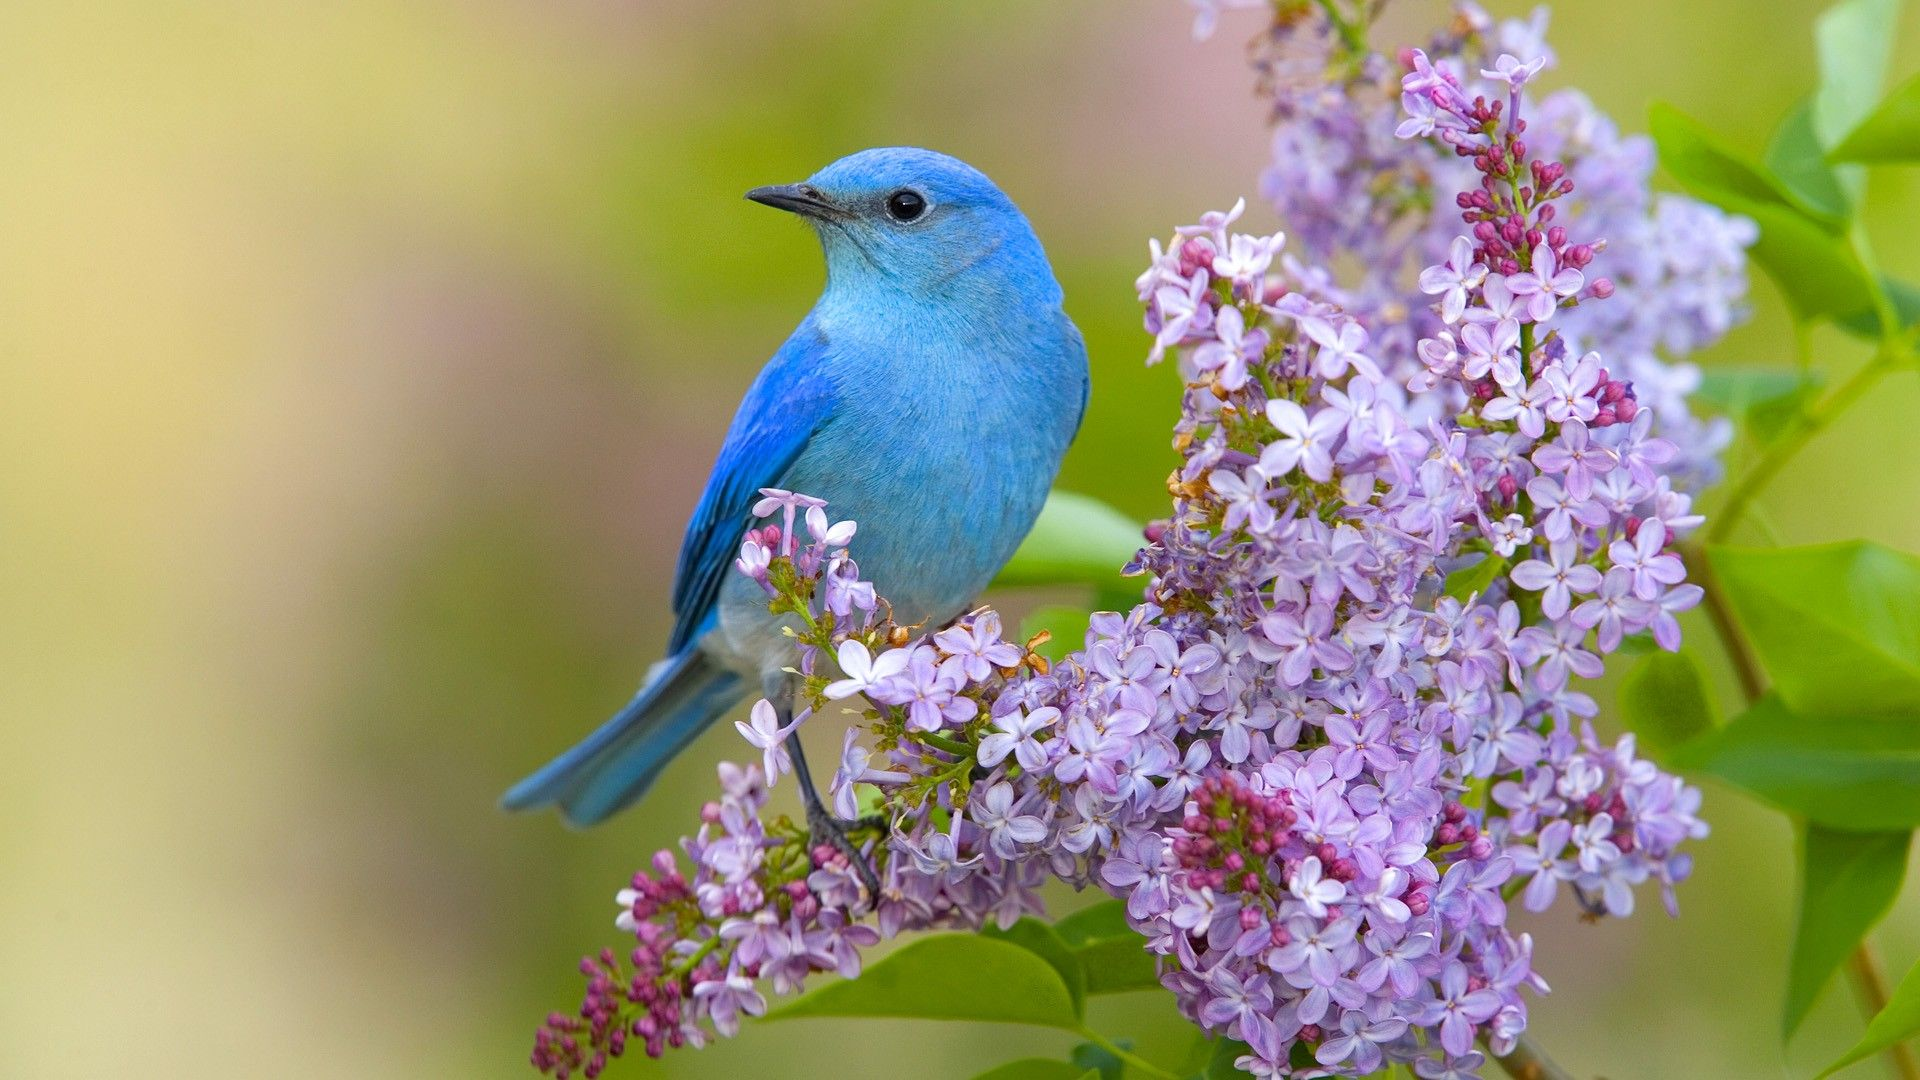 birds animals on the lilac flowers high definition wallpaper for desktop background 1920a—1080 aves pinterest wallpaper and wallpaper backgrounds